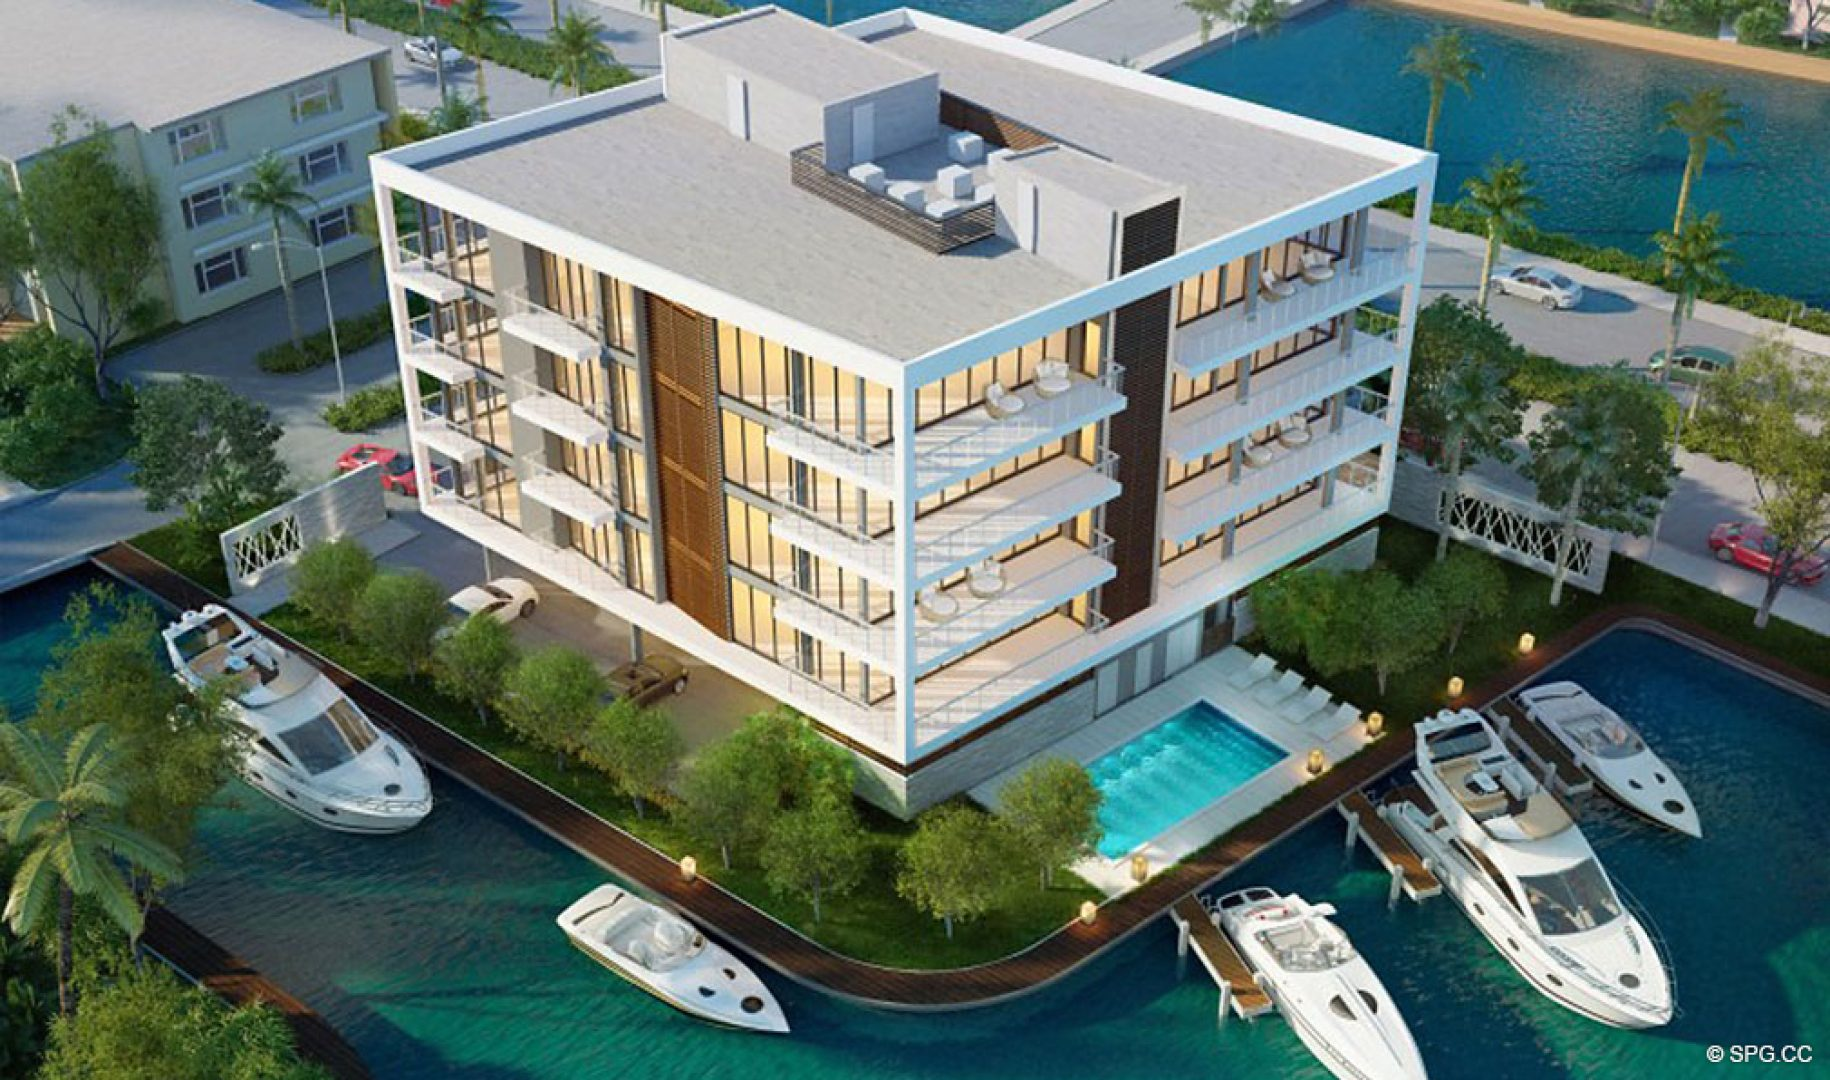 Aerial Intracoastal View of 1800 Las Olas, Luxury Waterfront Condos in Fort Lauderdale, Florida 33301